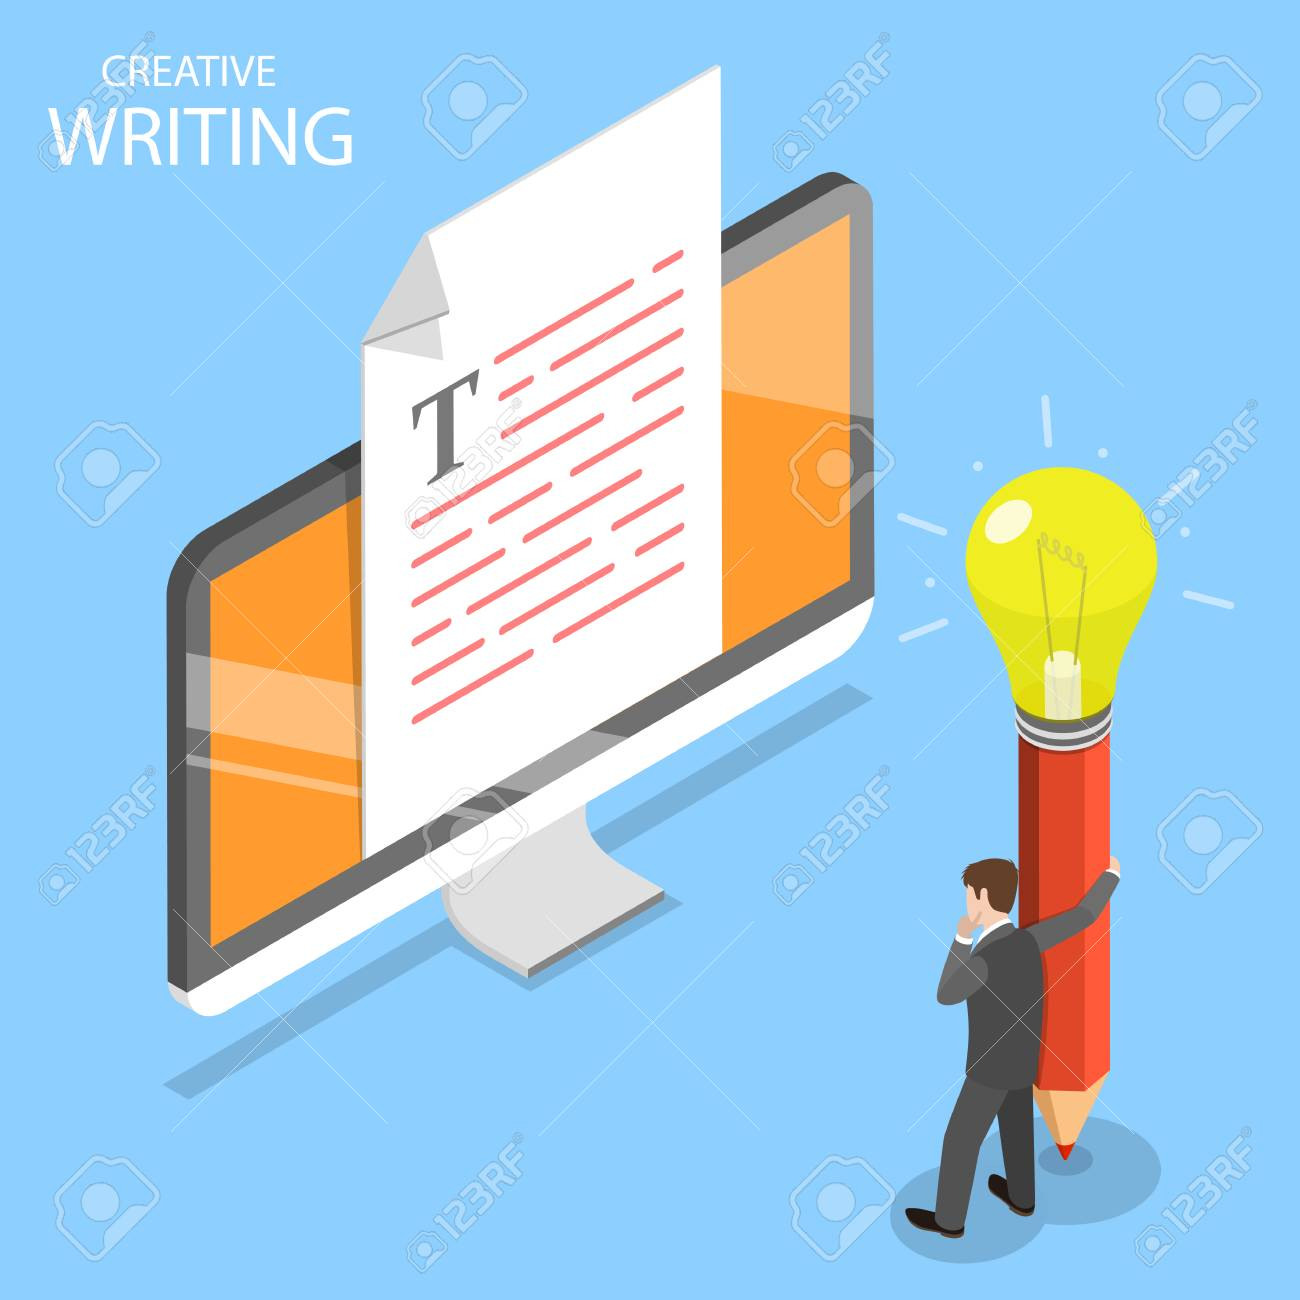 Creative Writing Flat Isometric Vector Concept Royalty Free